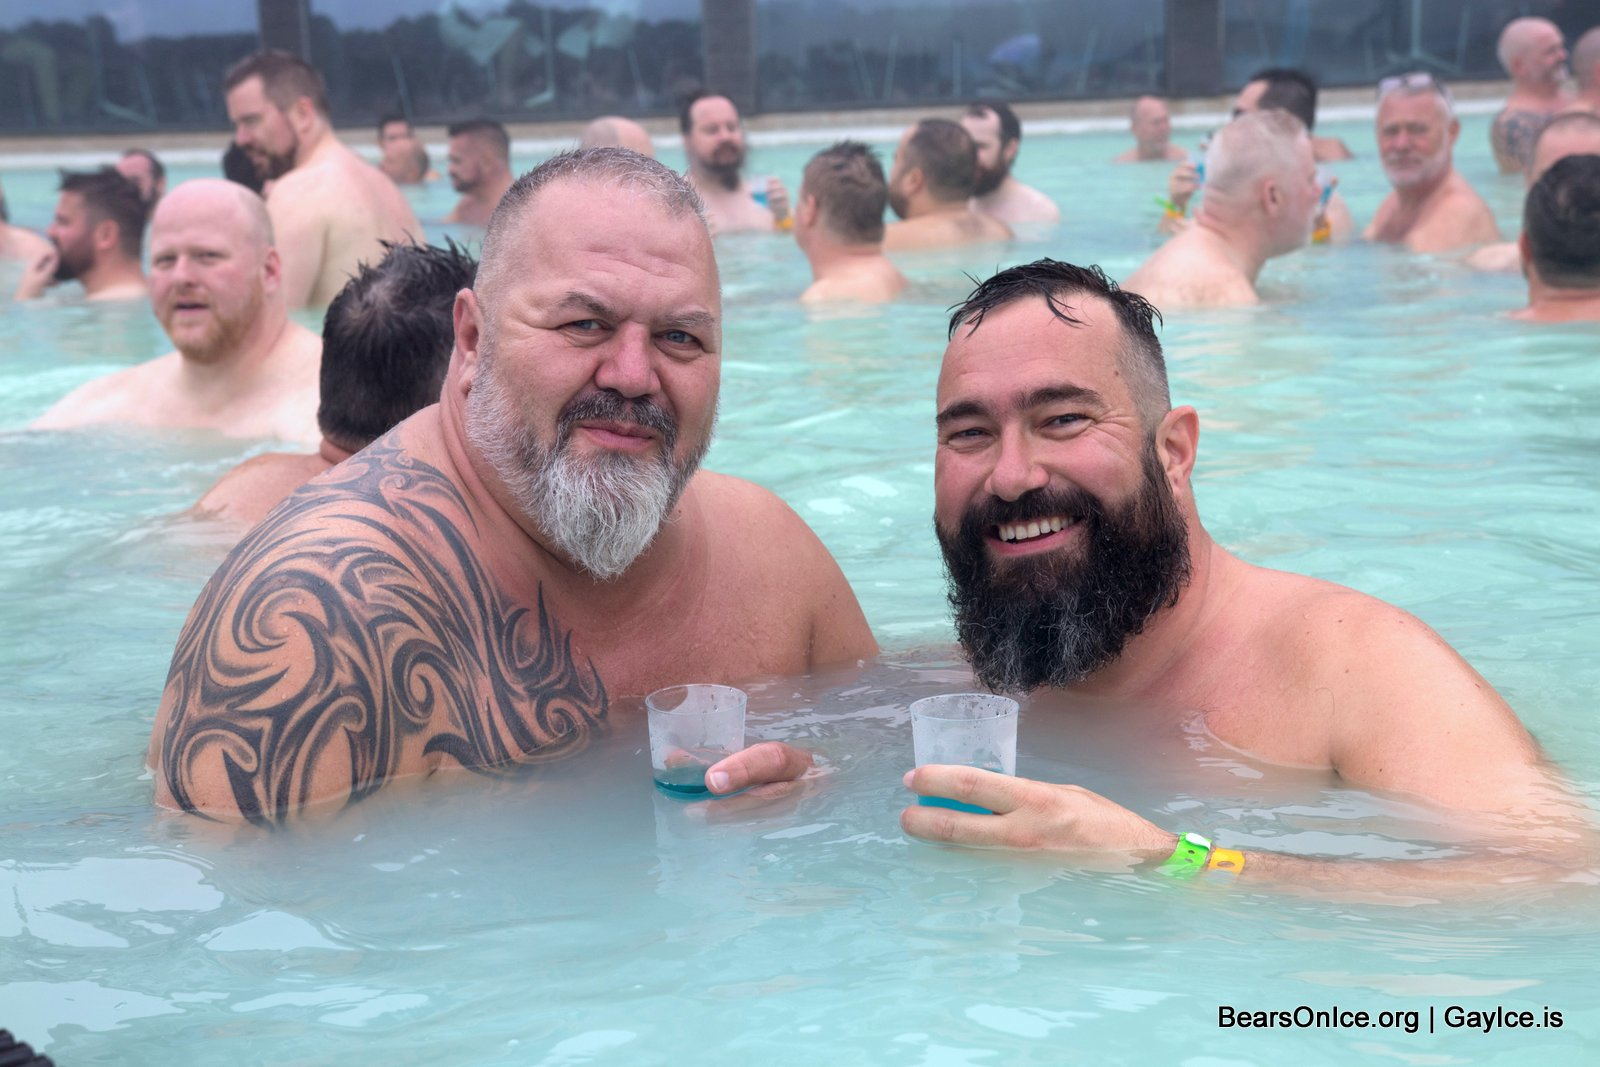 Bears on Ice 2017 - The Blue Lagoon